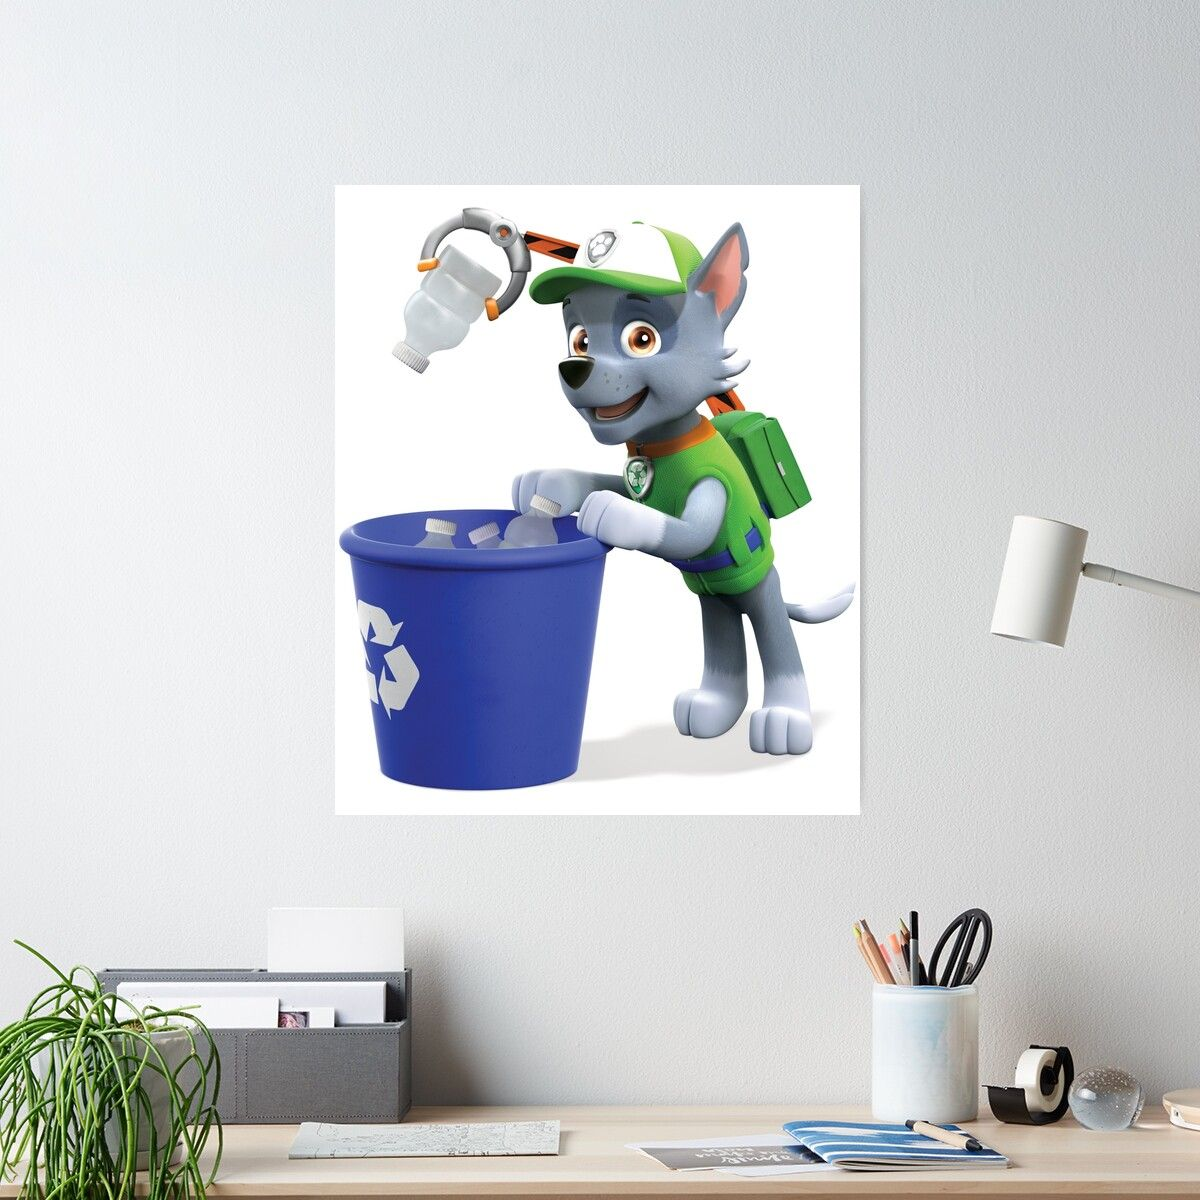 PAW Patrol Rocky Recycling Poster - Paw patrol rocky, Paw patrol, Paw patrol party, Paw, Recycling, Rocky - Highquality posters to hang in dorms, bedrooms or offices  Multiple sizes are available  Printed on 185gsm semi gloss poster paper  Additional sizes are available  PAW Patrol Rocky Recycling